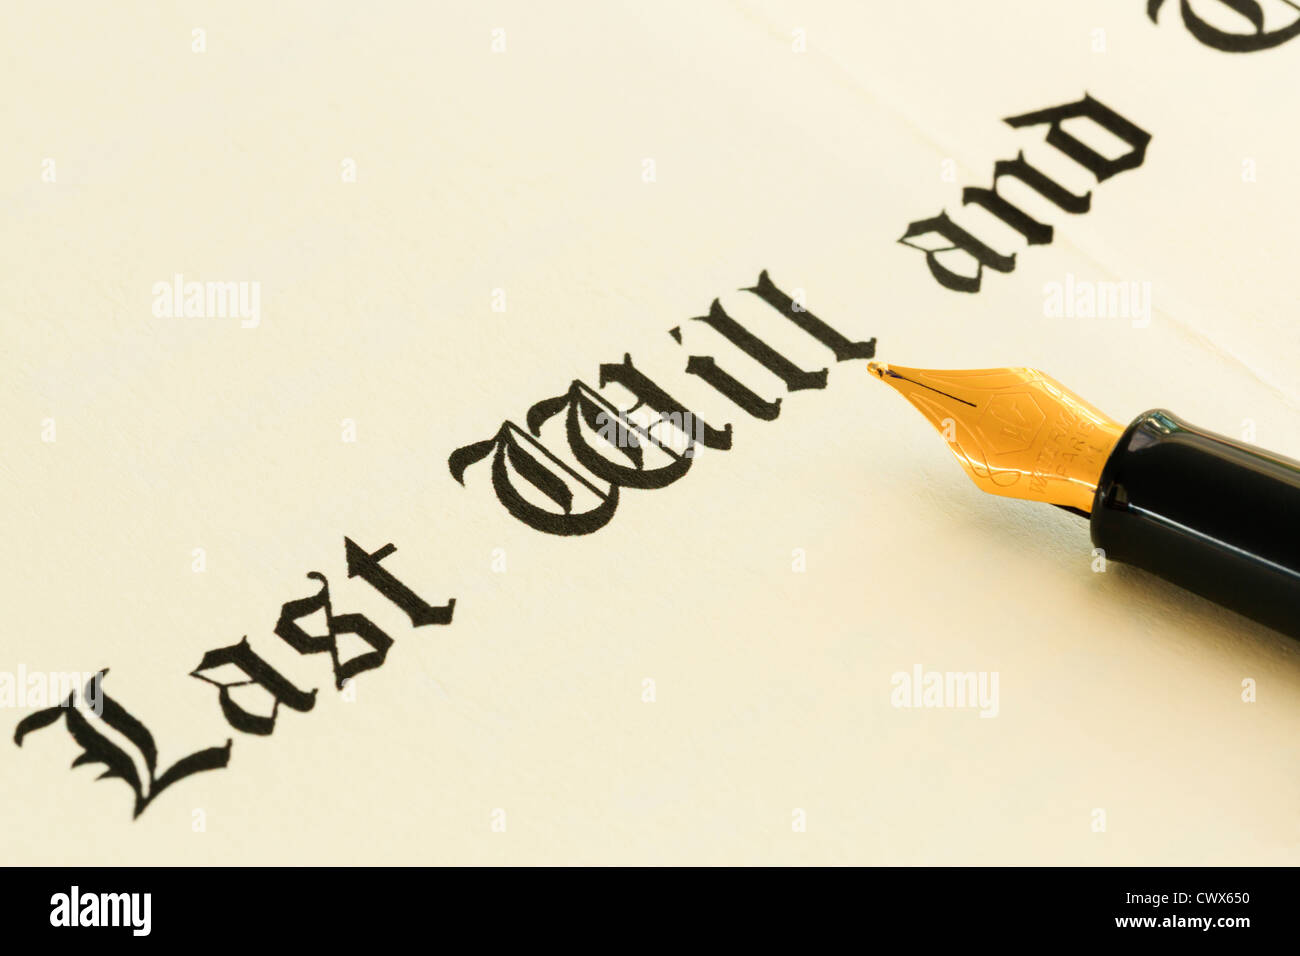 Last Will and Testament document with a fountain pen for signing - Stock Image